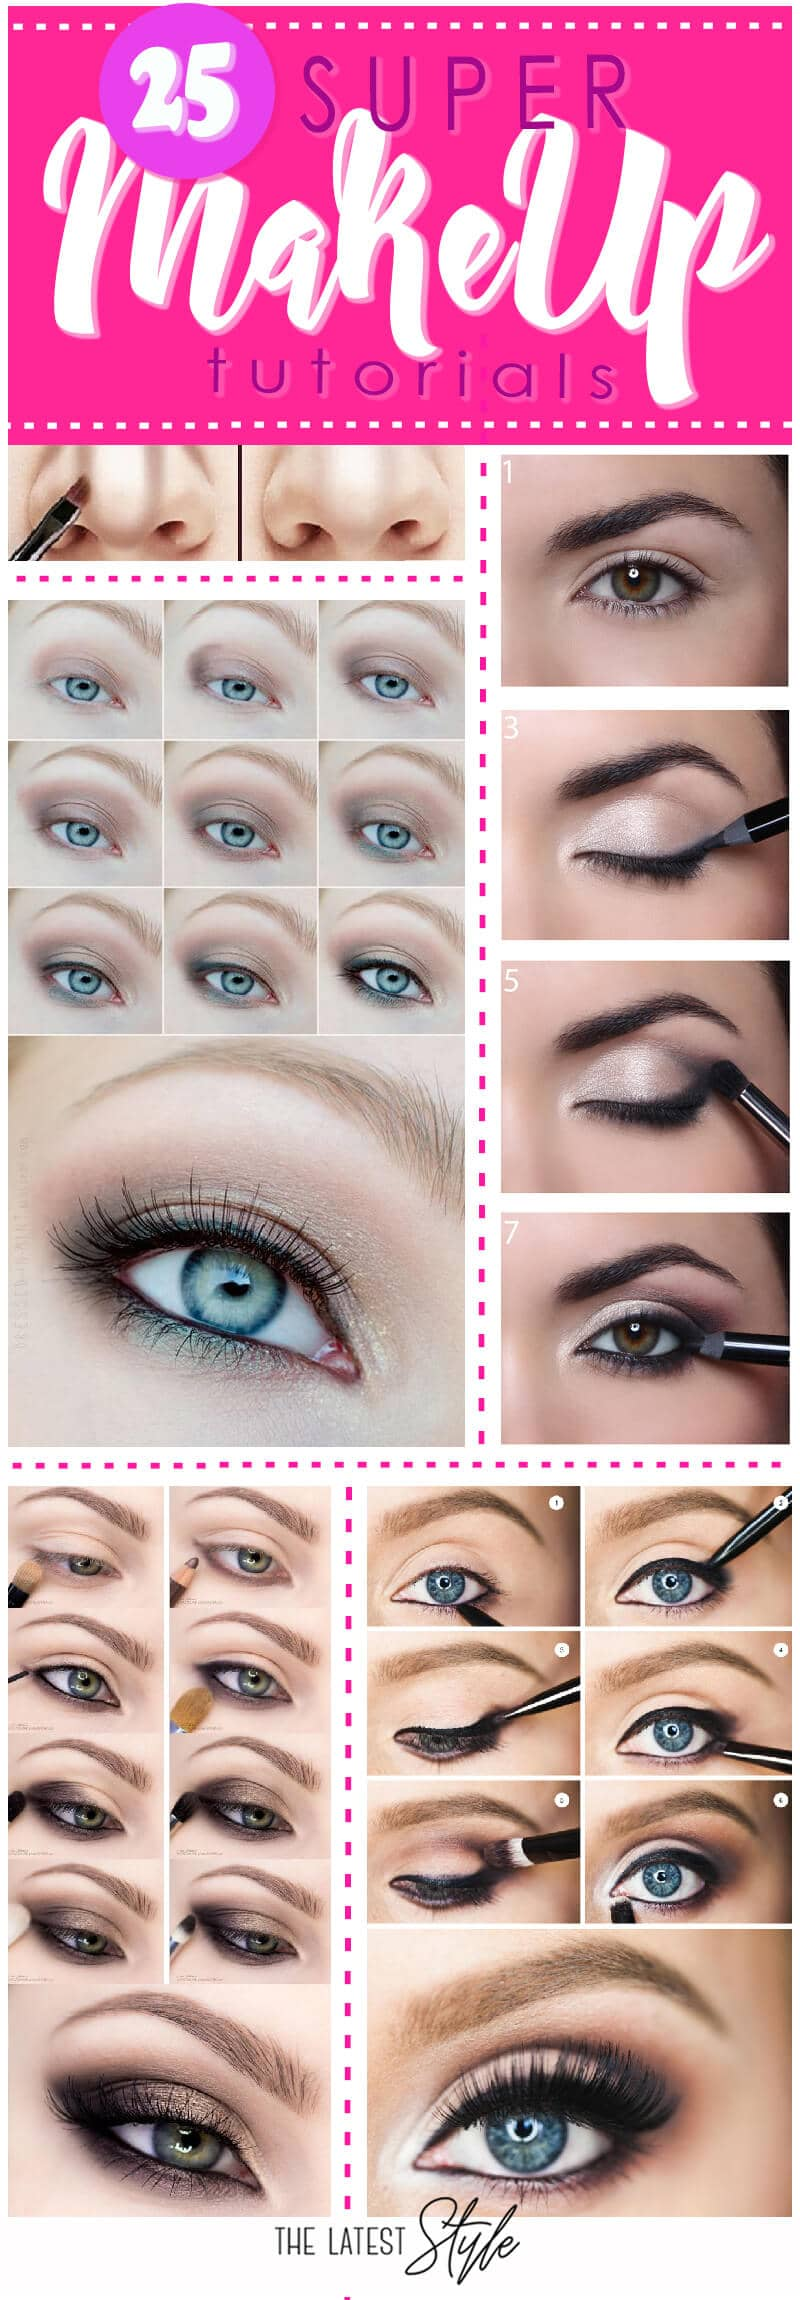 25 Super MakeUp Tutorials